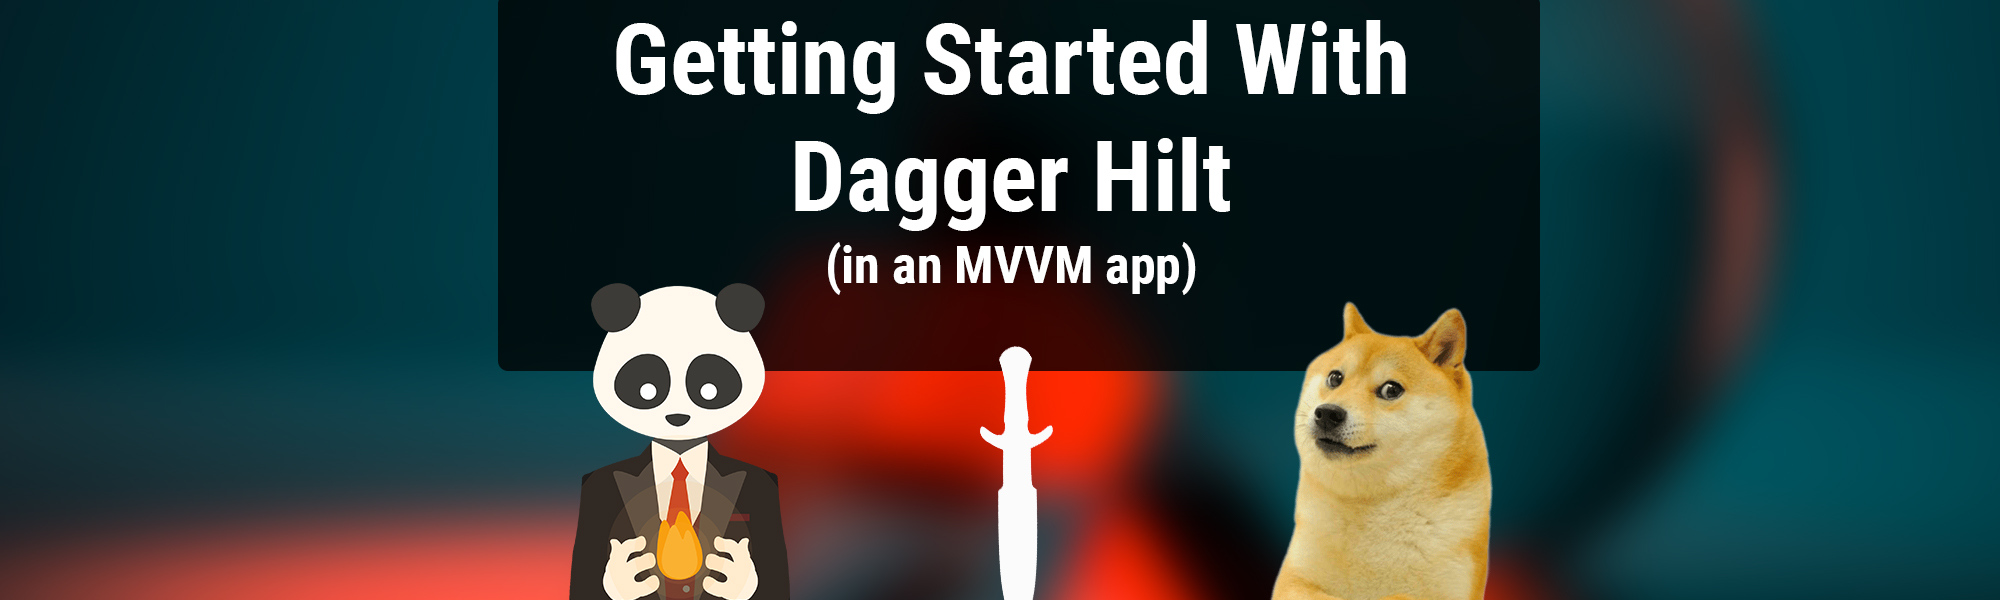 Getting Started with Dagger Hilt in an MVVM App (Android Dependency Injection in 2021)